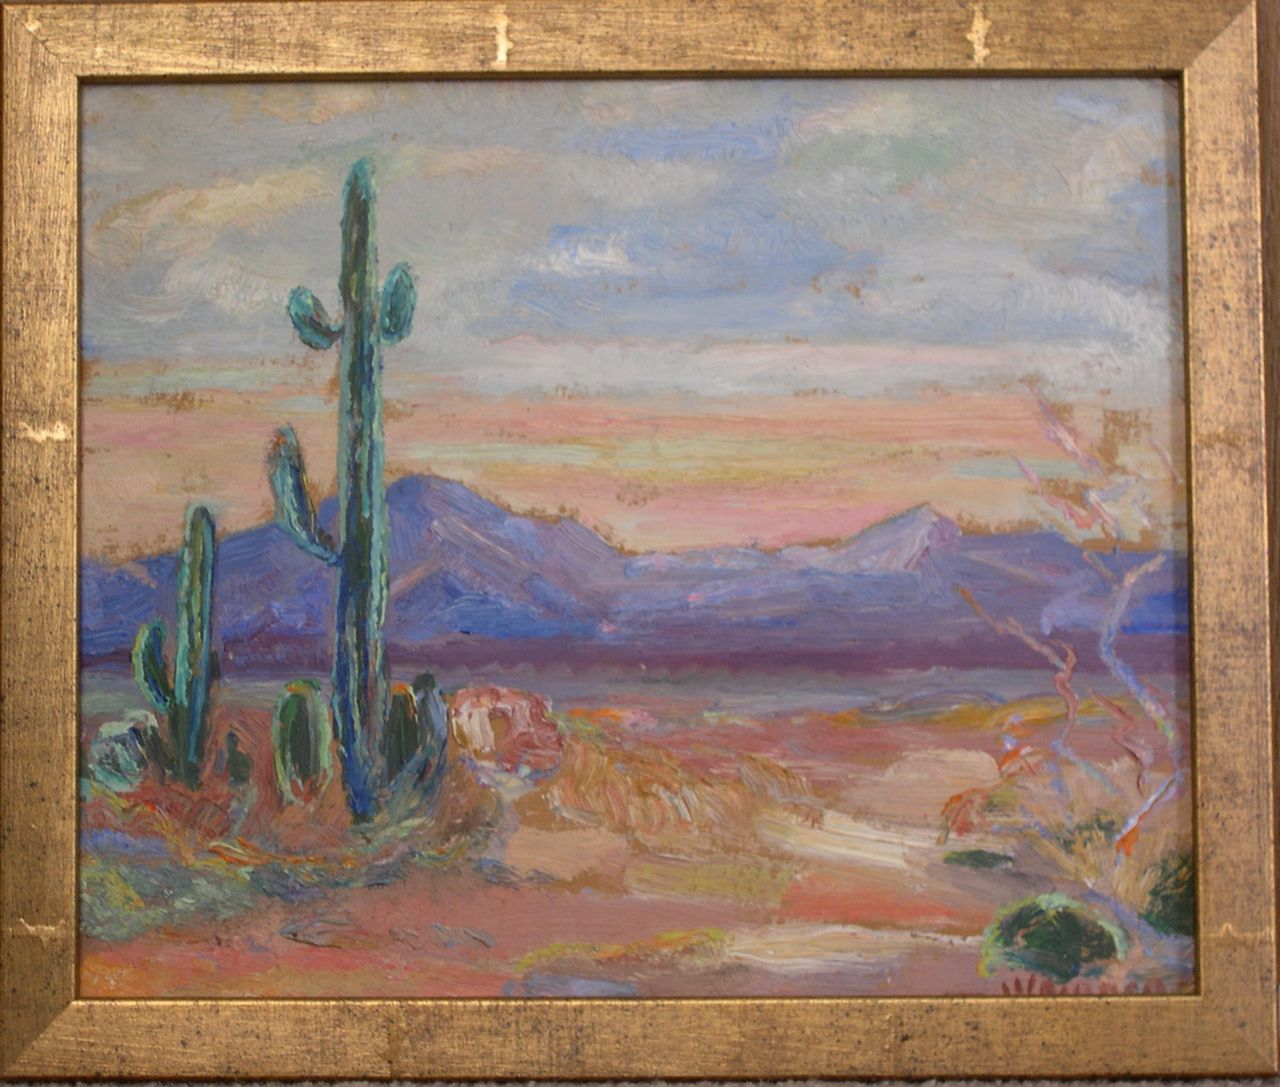 Untitled painting, near Tucson, Jennie Vennerstrom Cannon